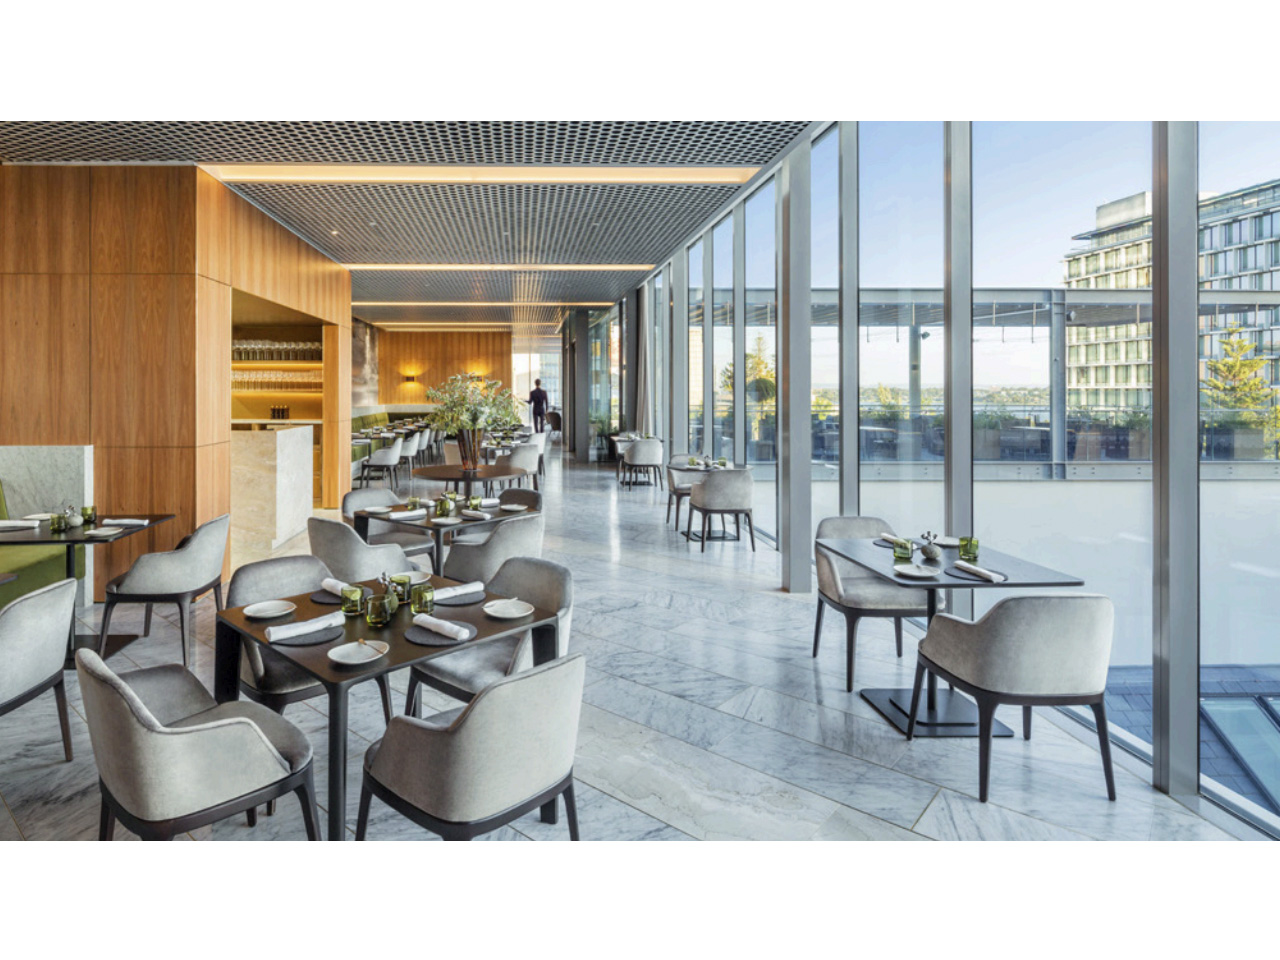 Tables set along glass windows with city outlook